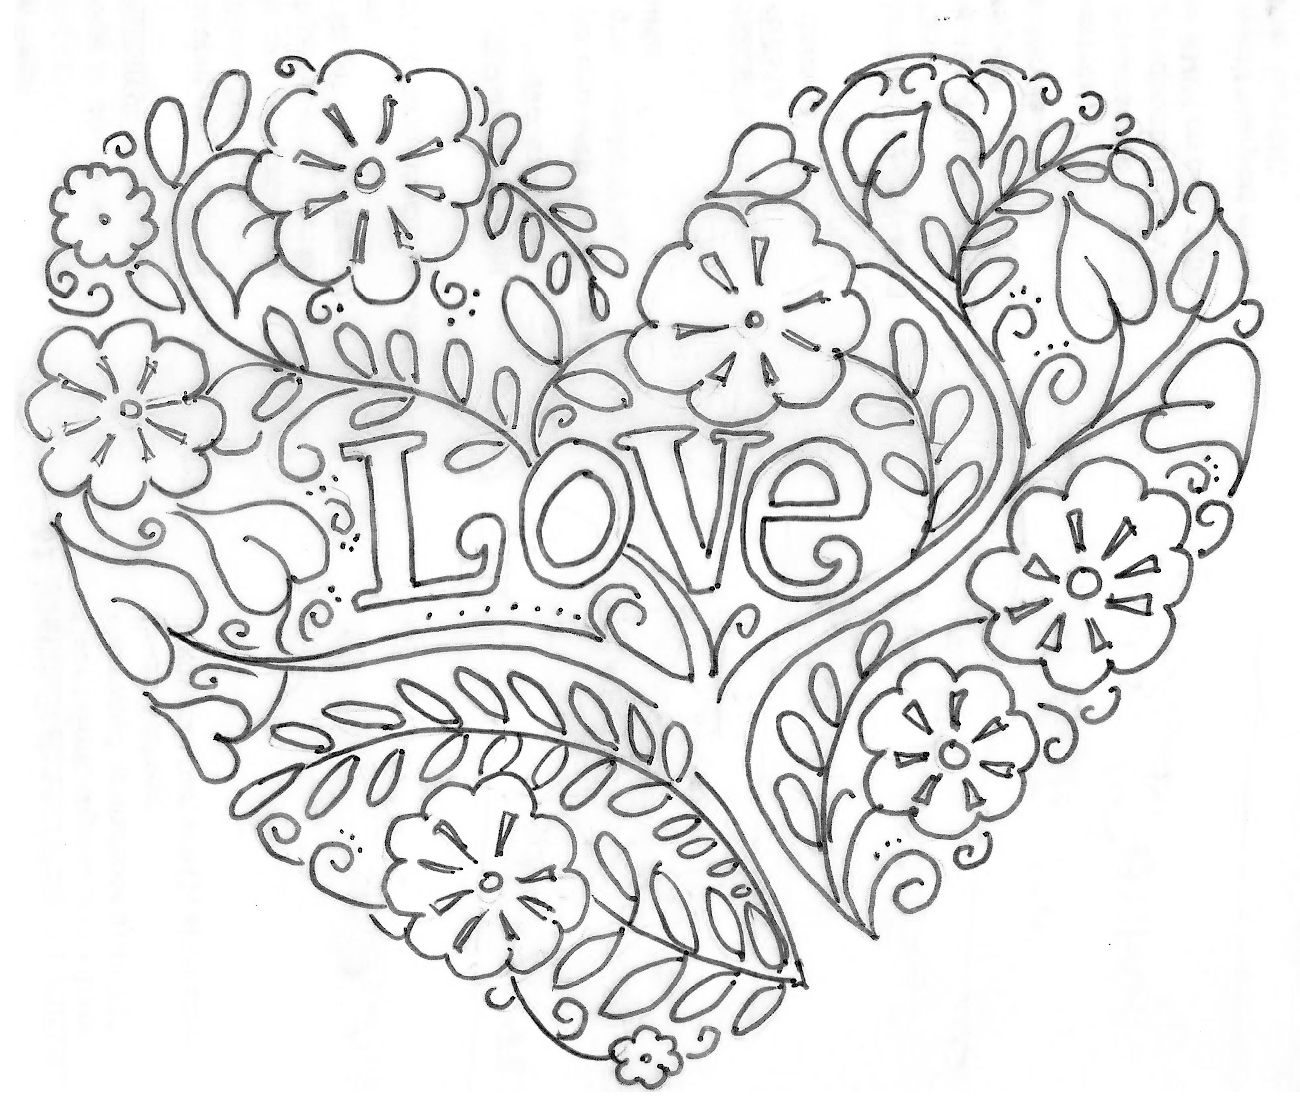 older valentines day coloring pages - photo#21